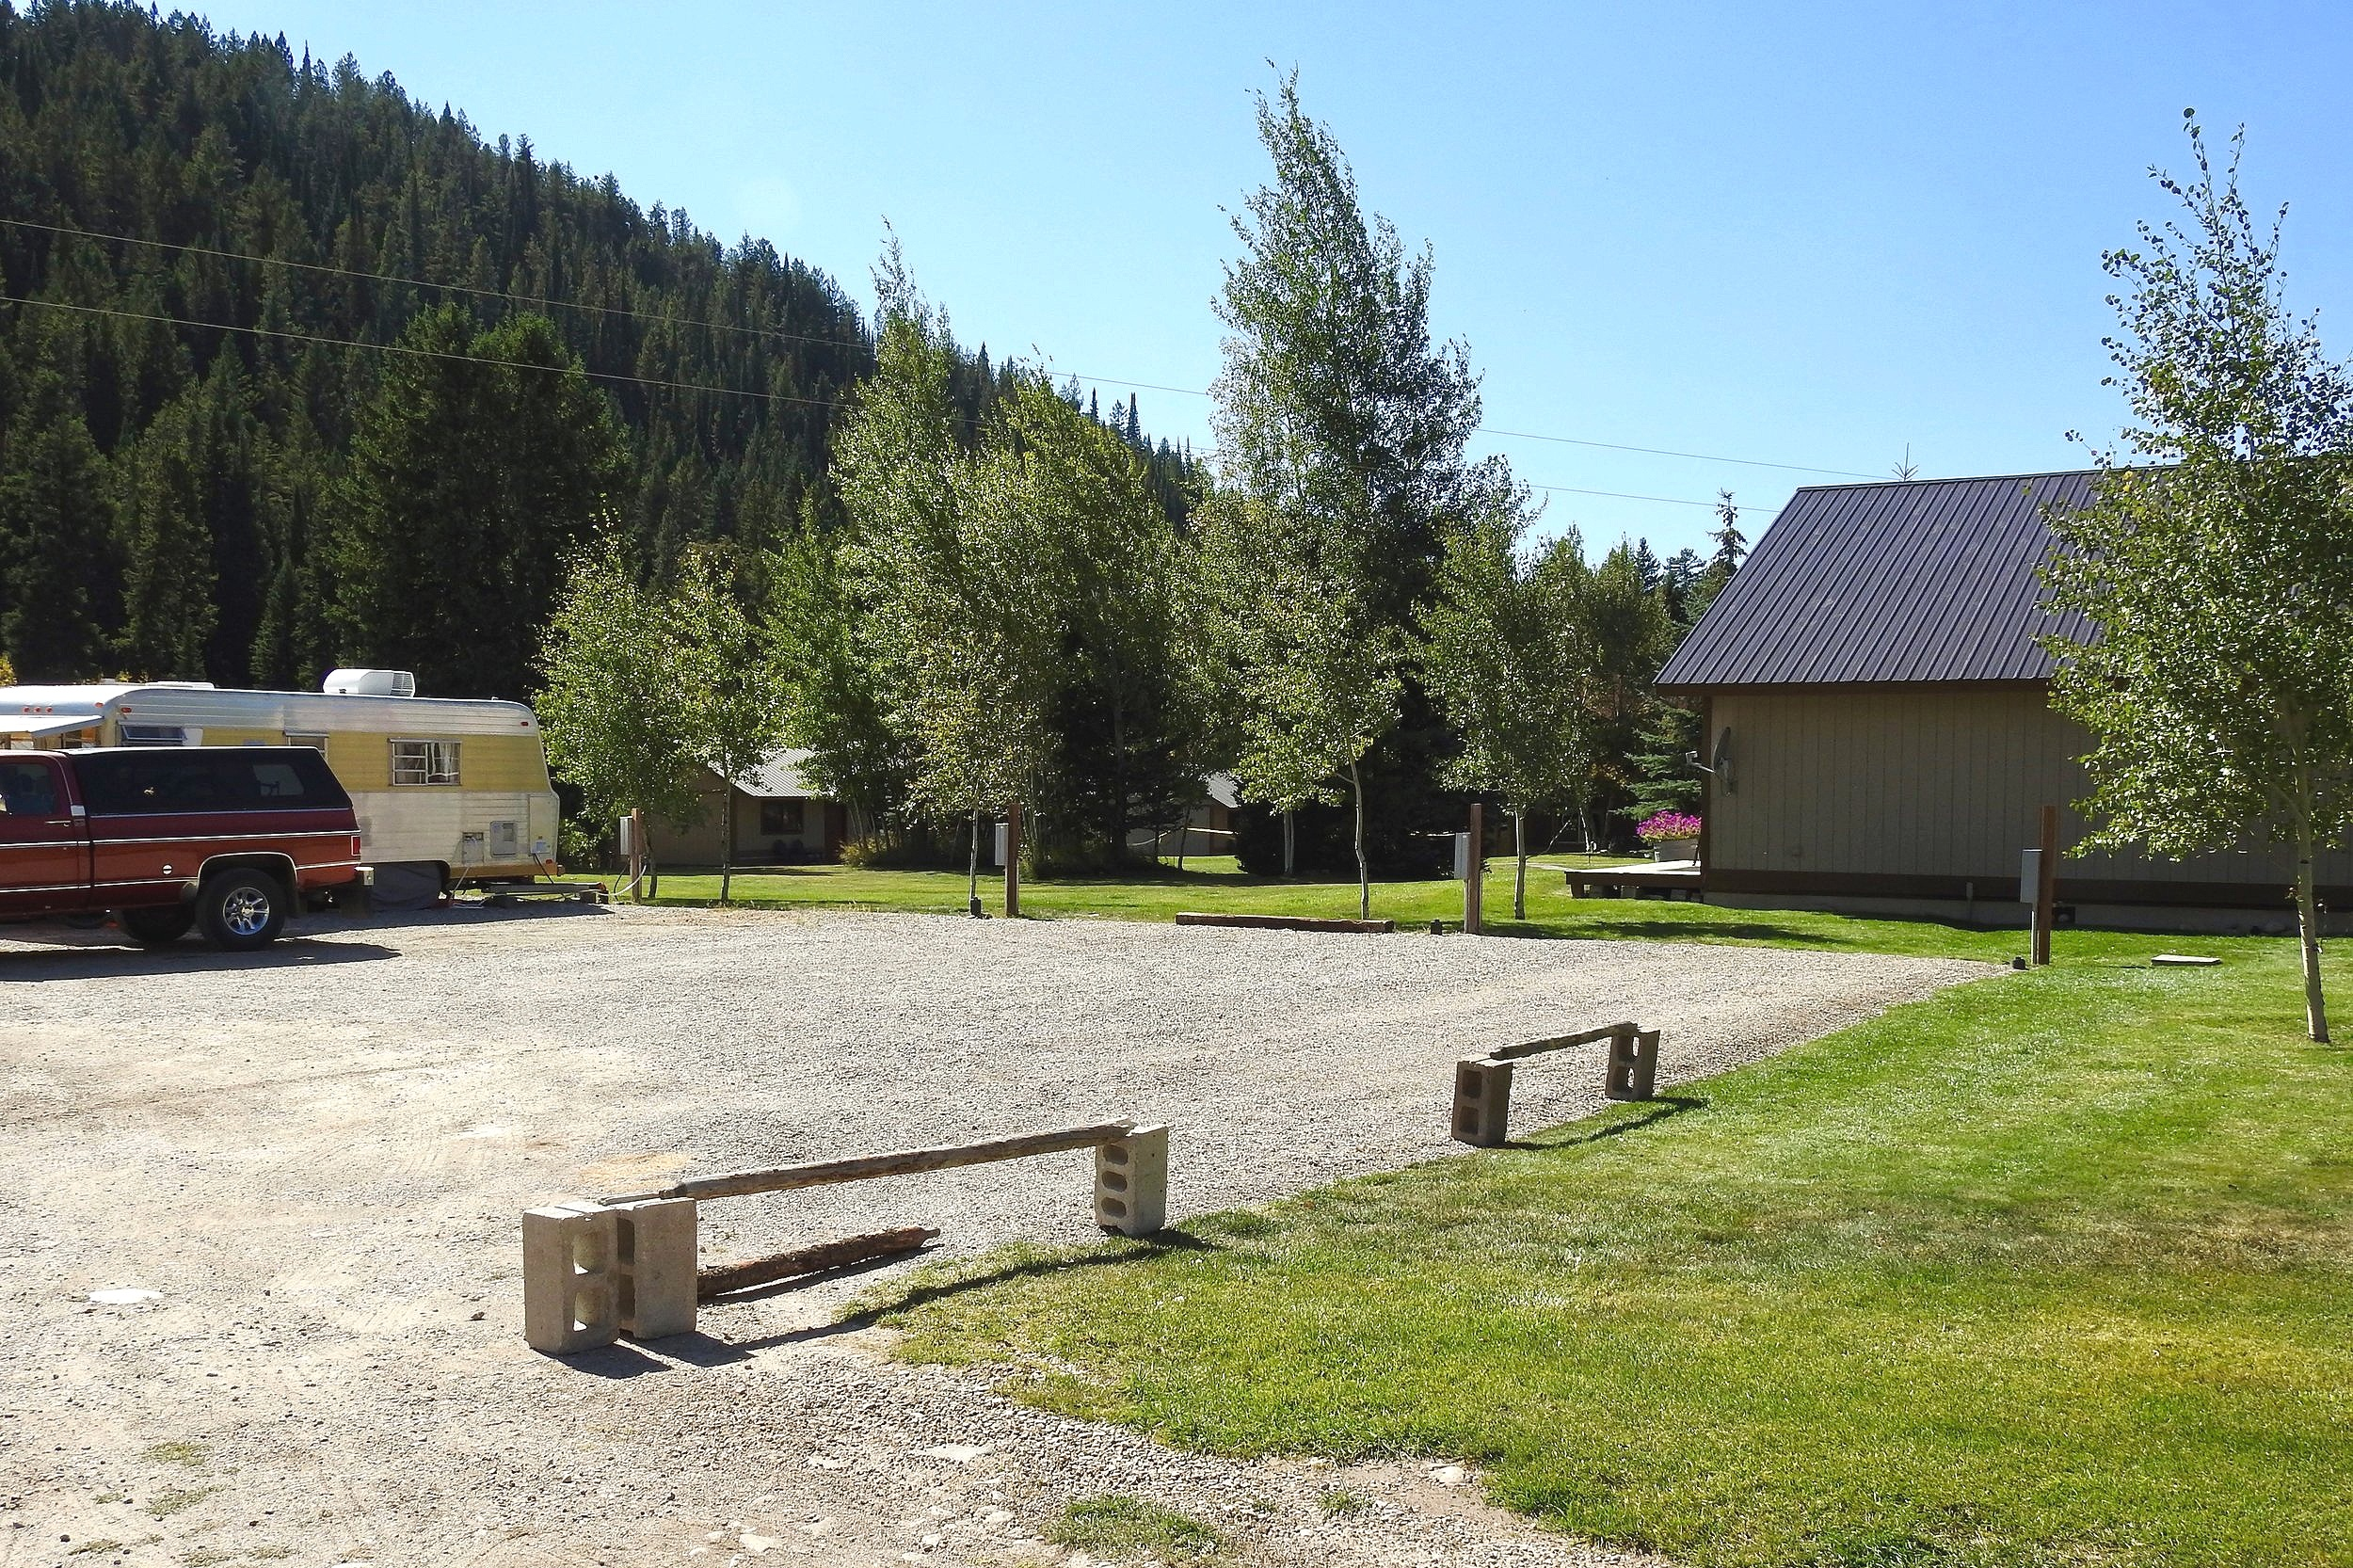 RV hookups are a 1-minute walk to Moose Creek with 3-sided Mountainviews, the 4th side is Soul Ranch. The ground isleveled and graveled. Max RV length is 32'. - rv camping$1,999